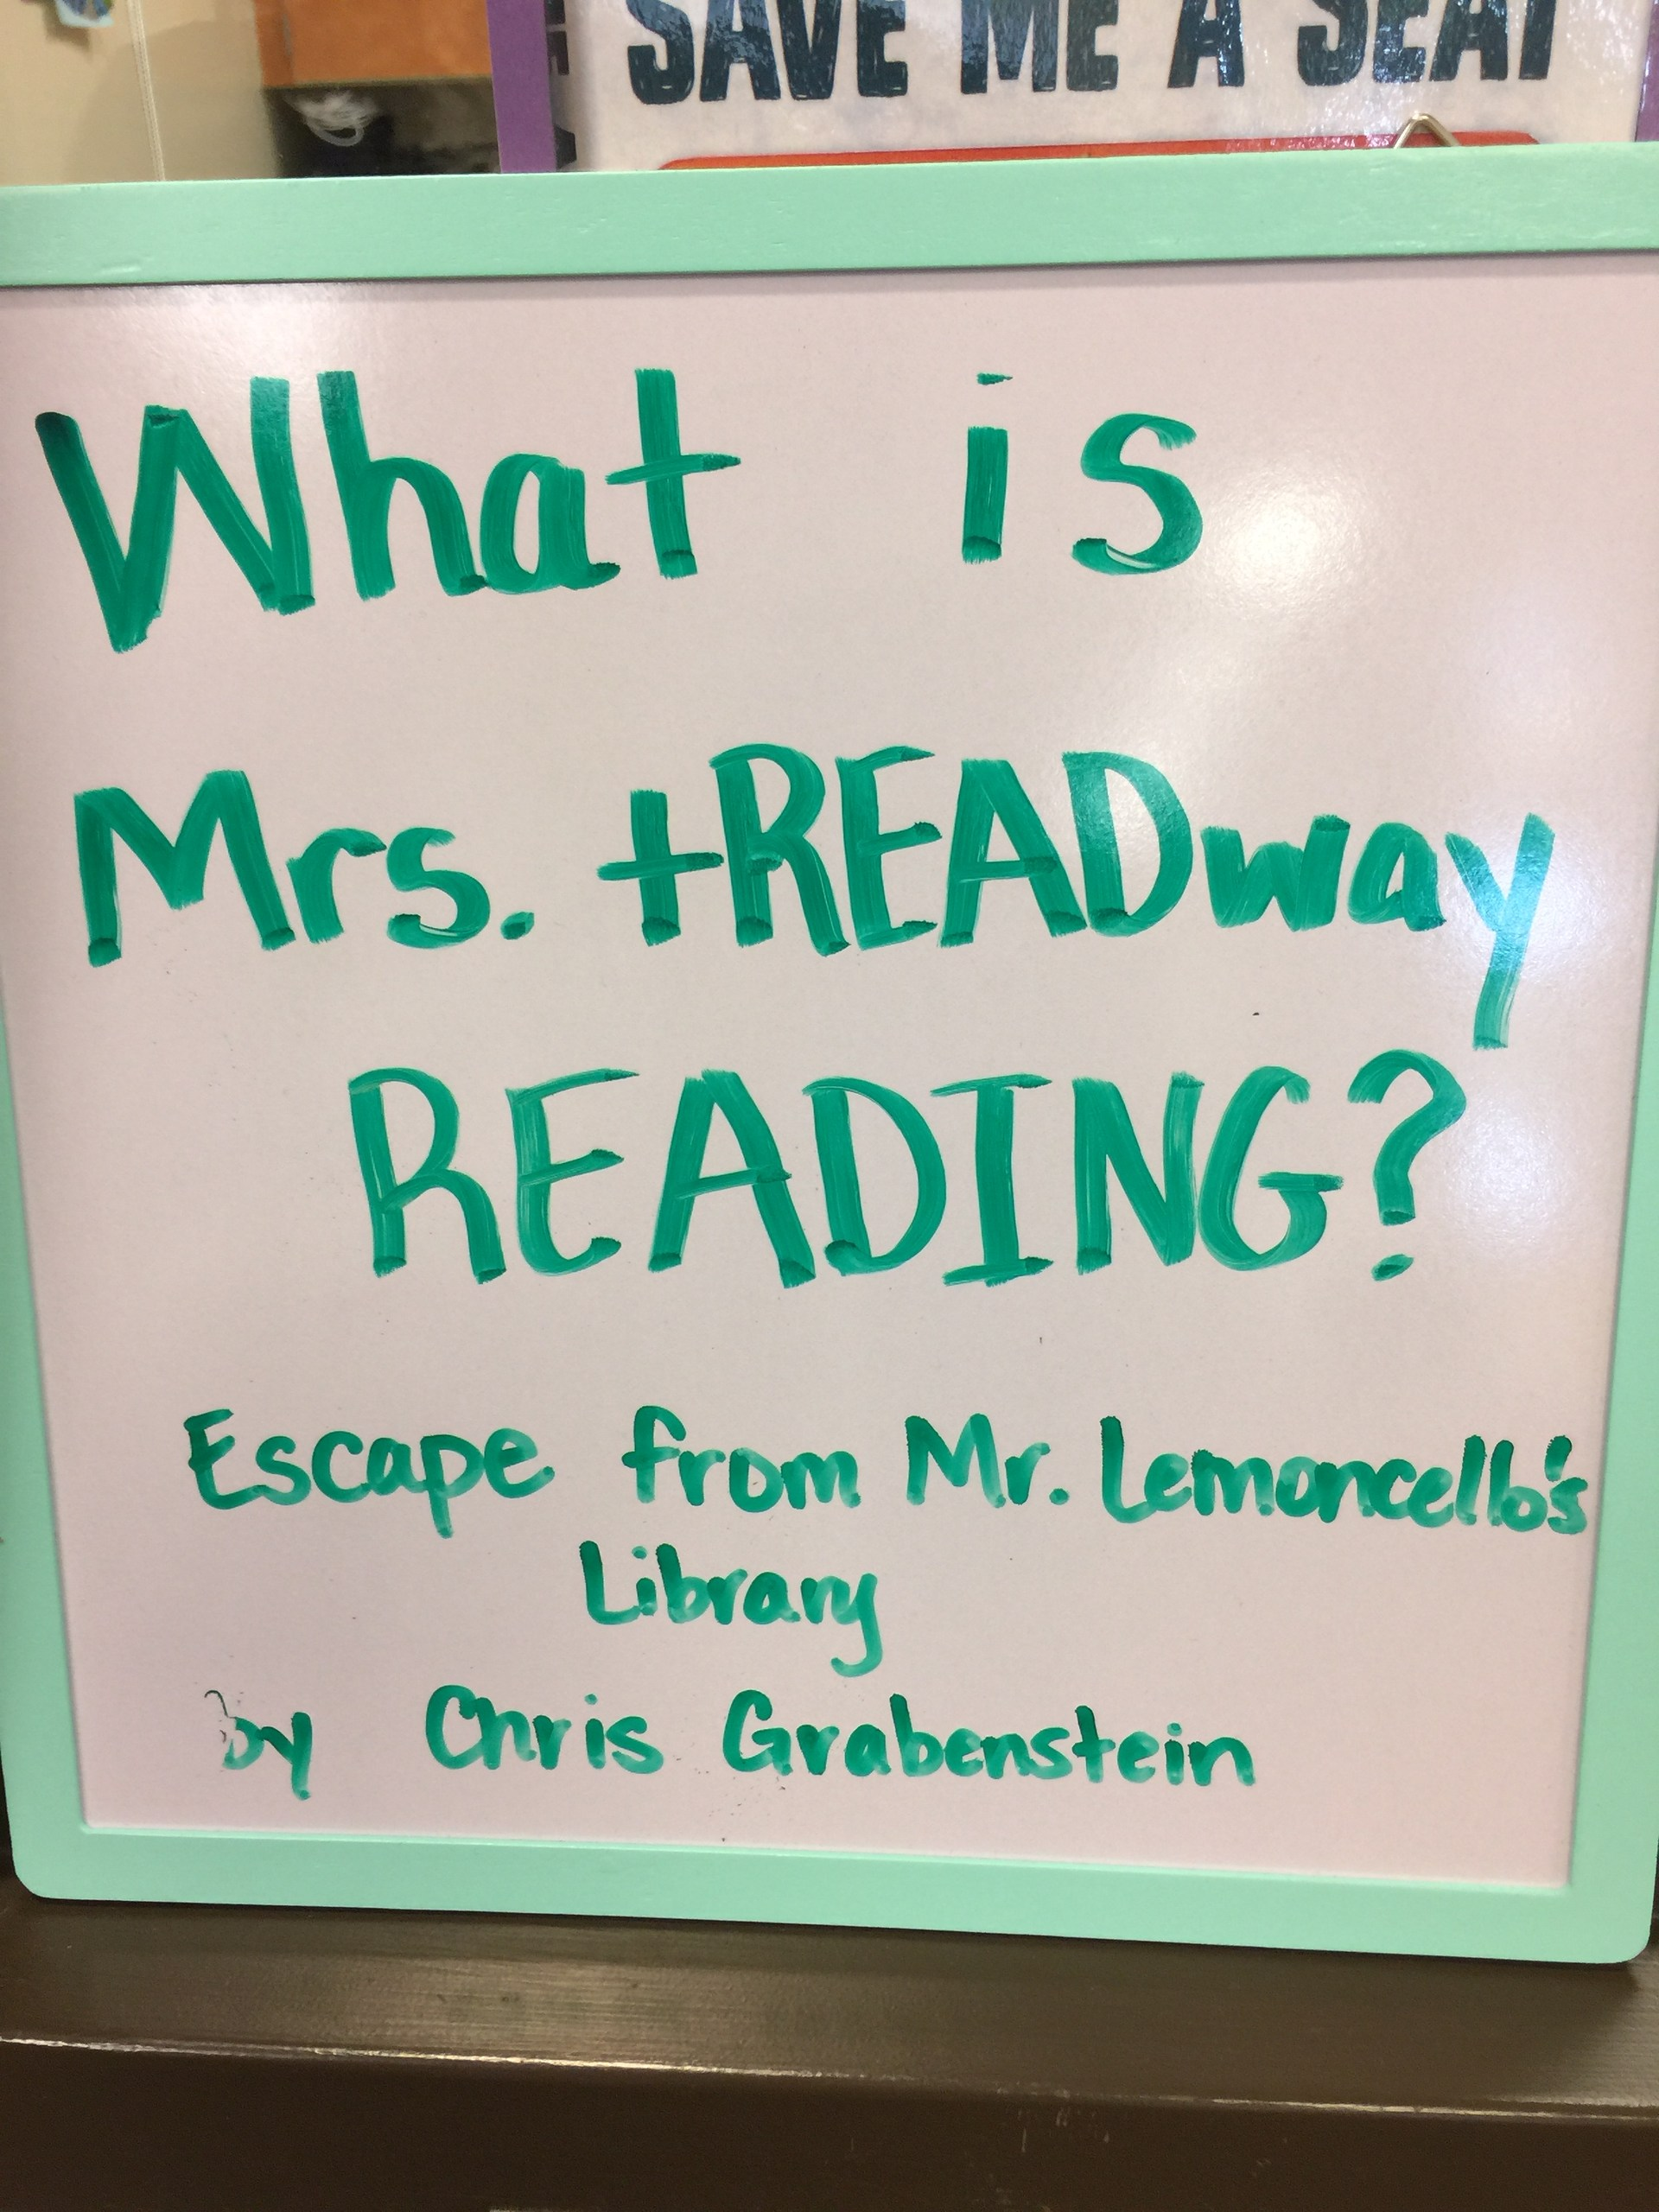 'What is Mrs. tREADway reading?'